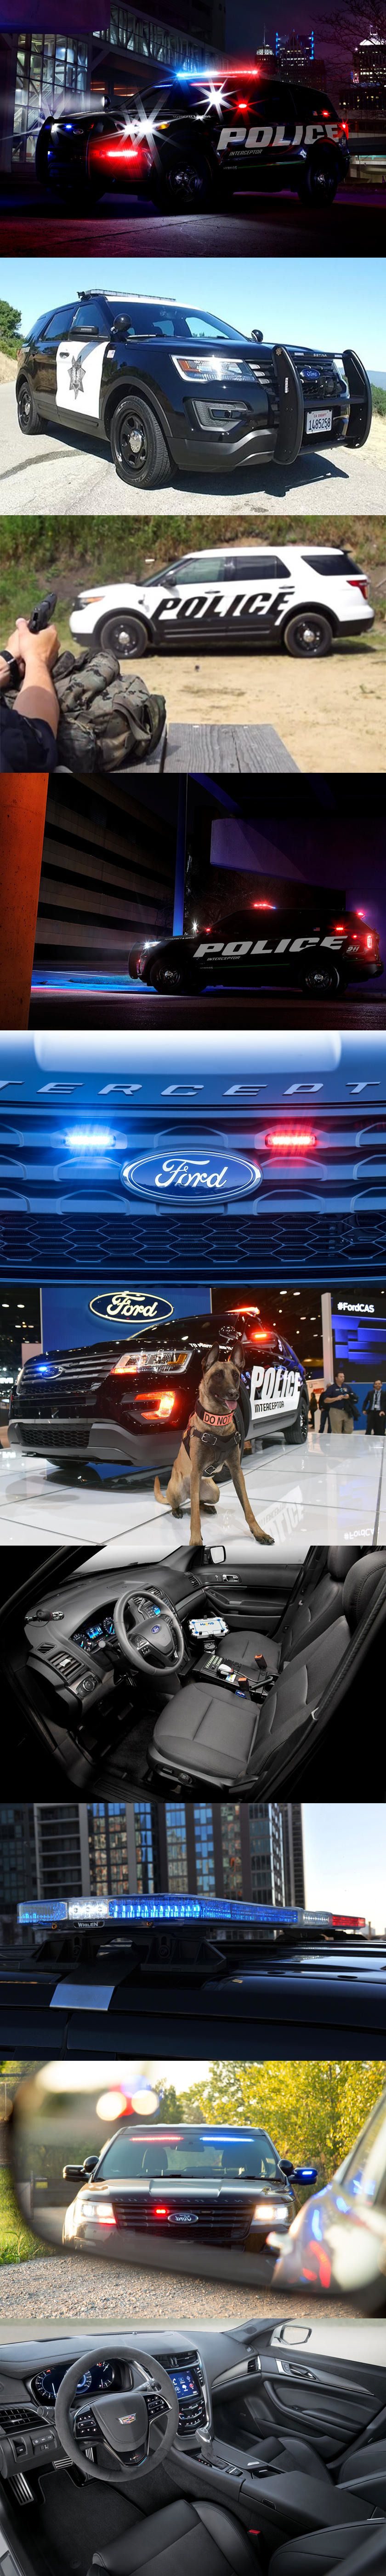 2020 Ford Interceptor Utility Is Officially Americas Fastest Cop Car